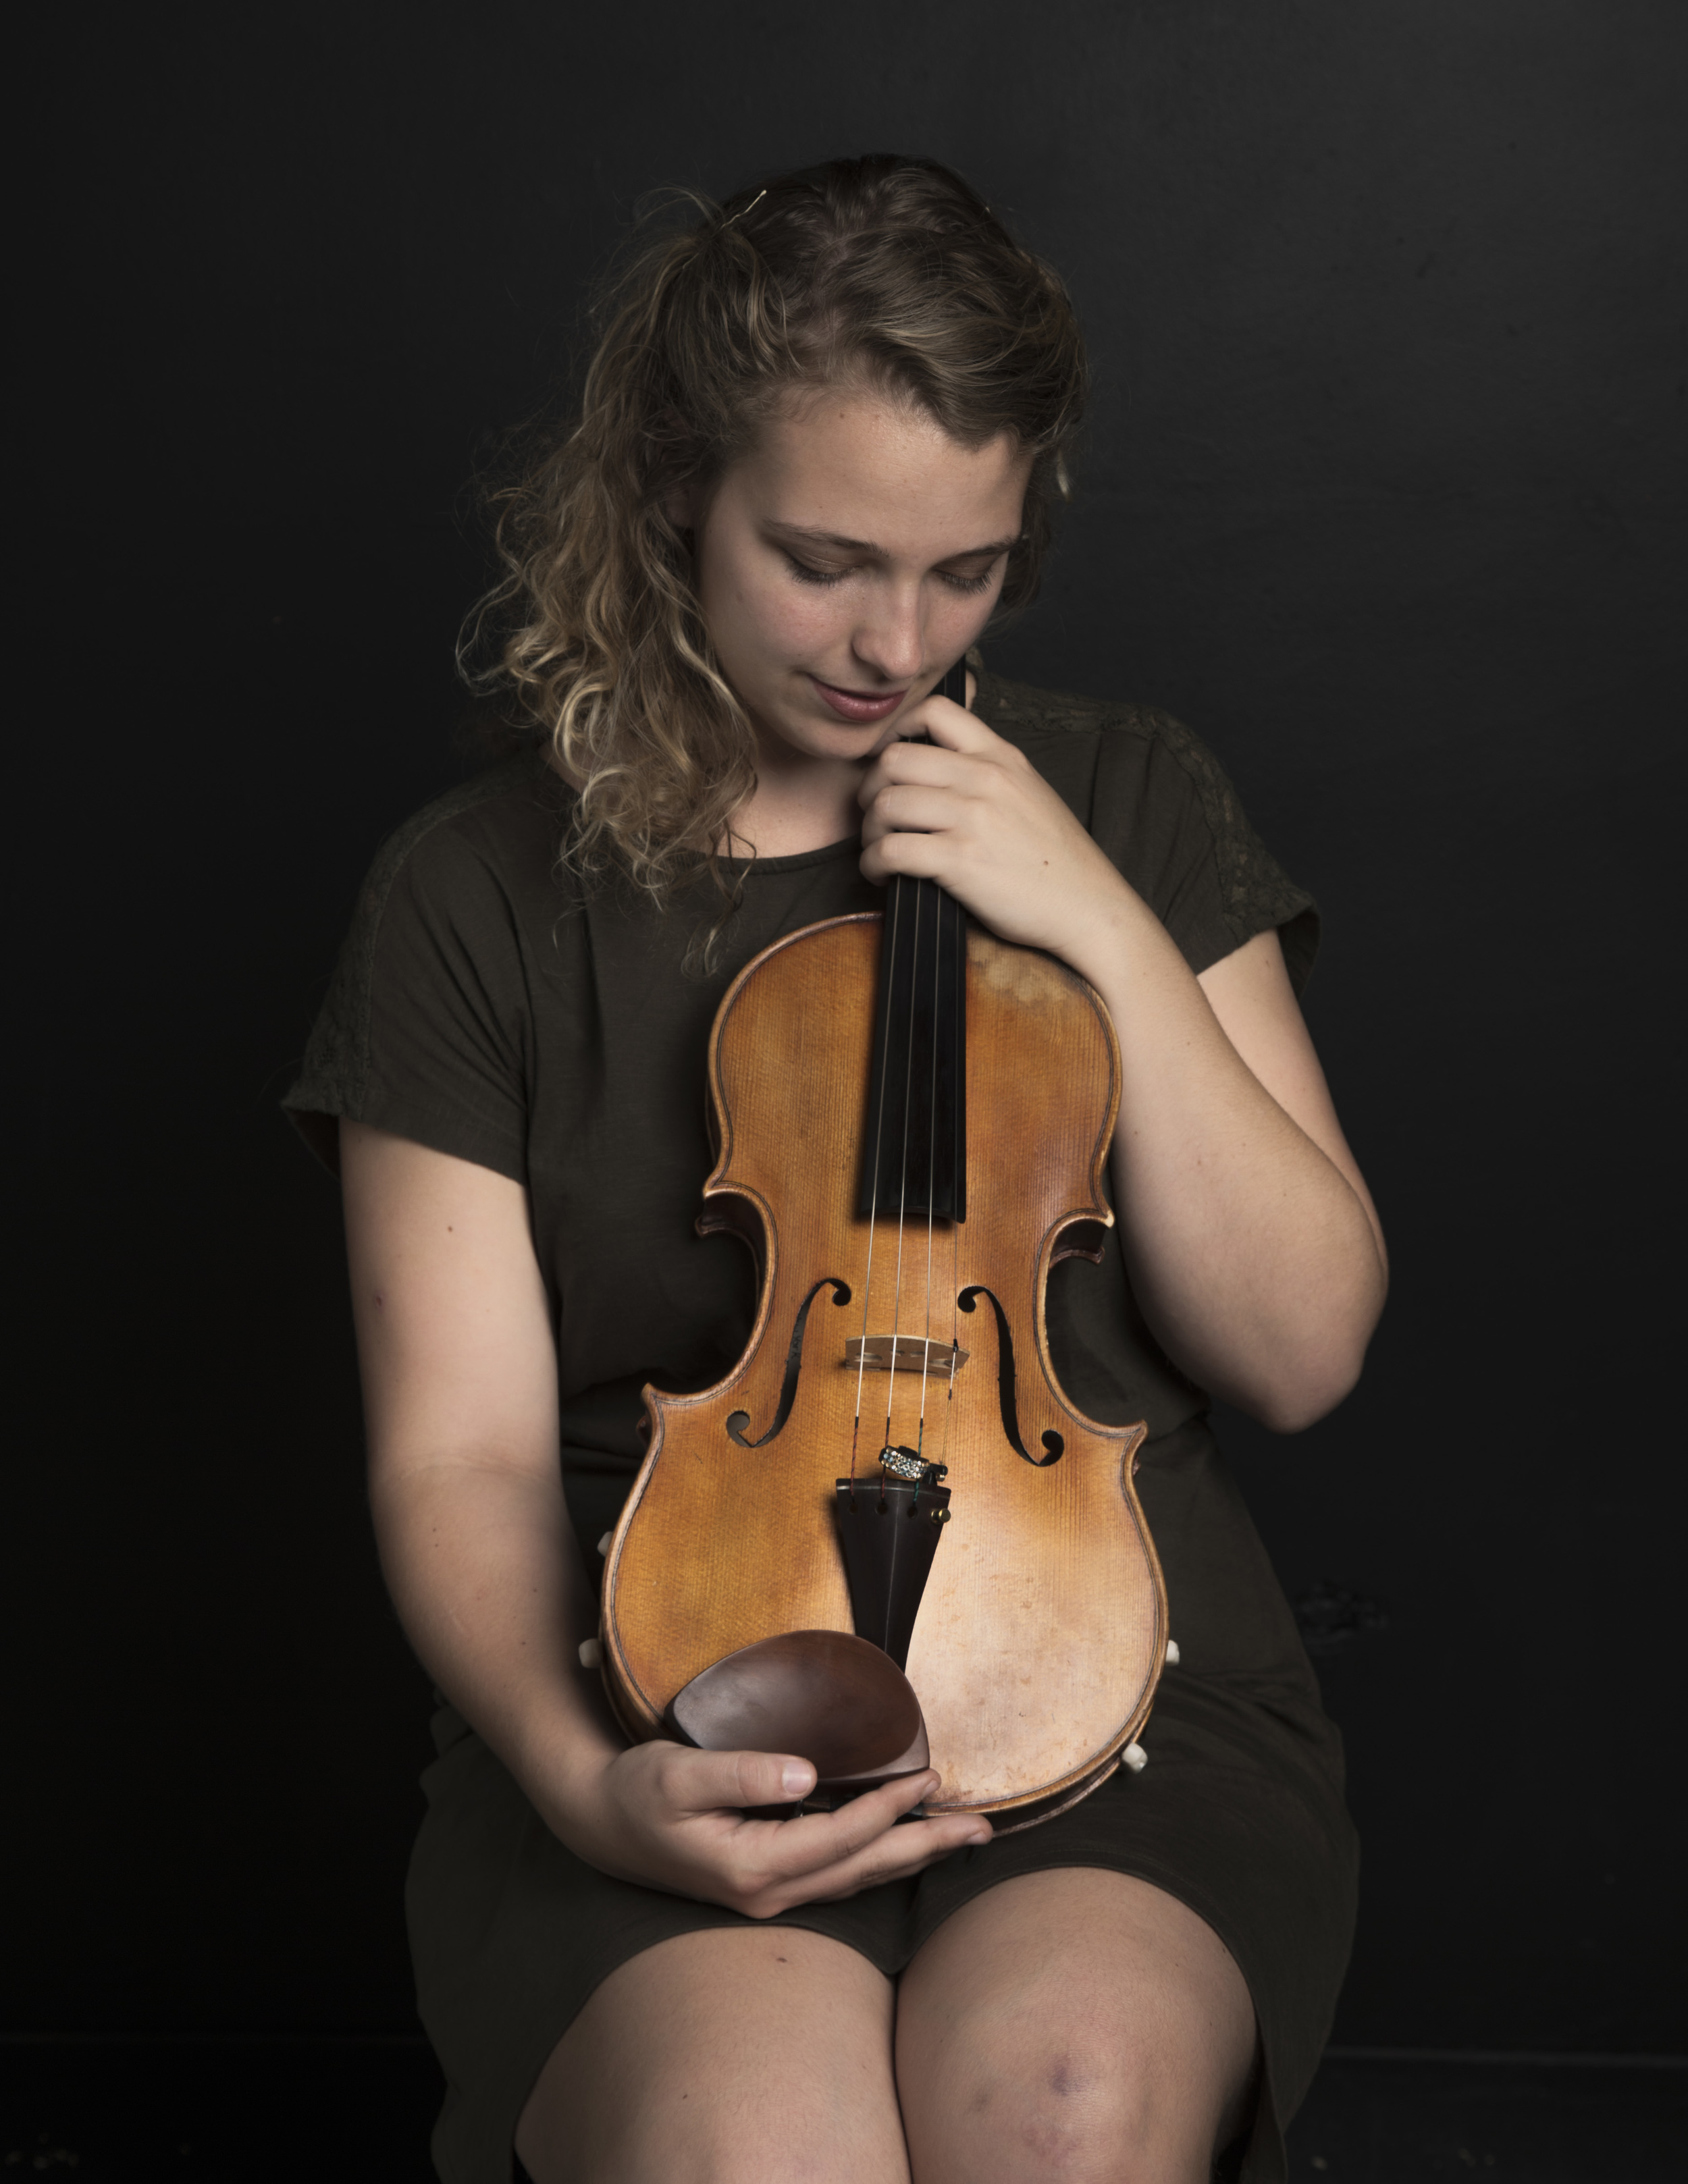 Bridget Kinneary  Viola   Bridget studies at the Eastman School of Music, where she anticipates graduating in December 2015 with a Bachelors in Music Education and Performance, a certificate in Arts Leadership, and a minor in German. She has studied abroad in Berlin and Freiburg, Germany.